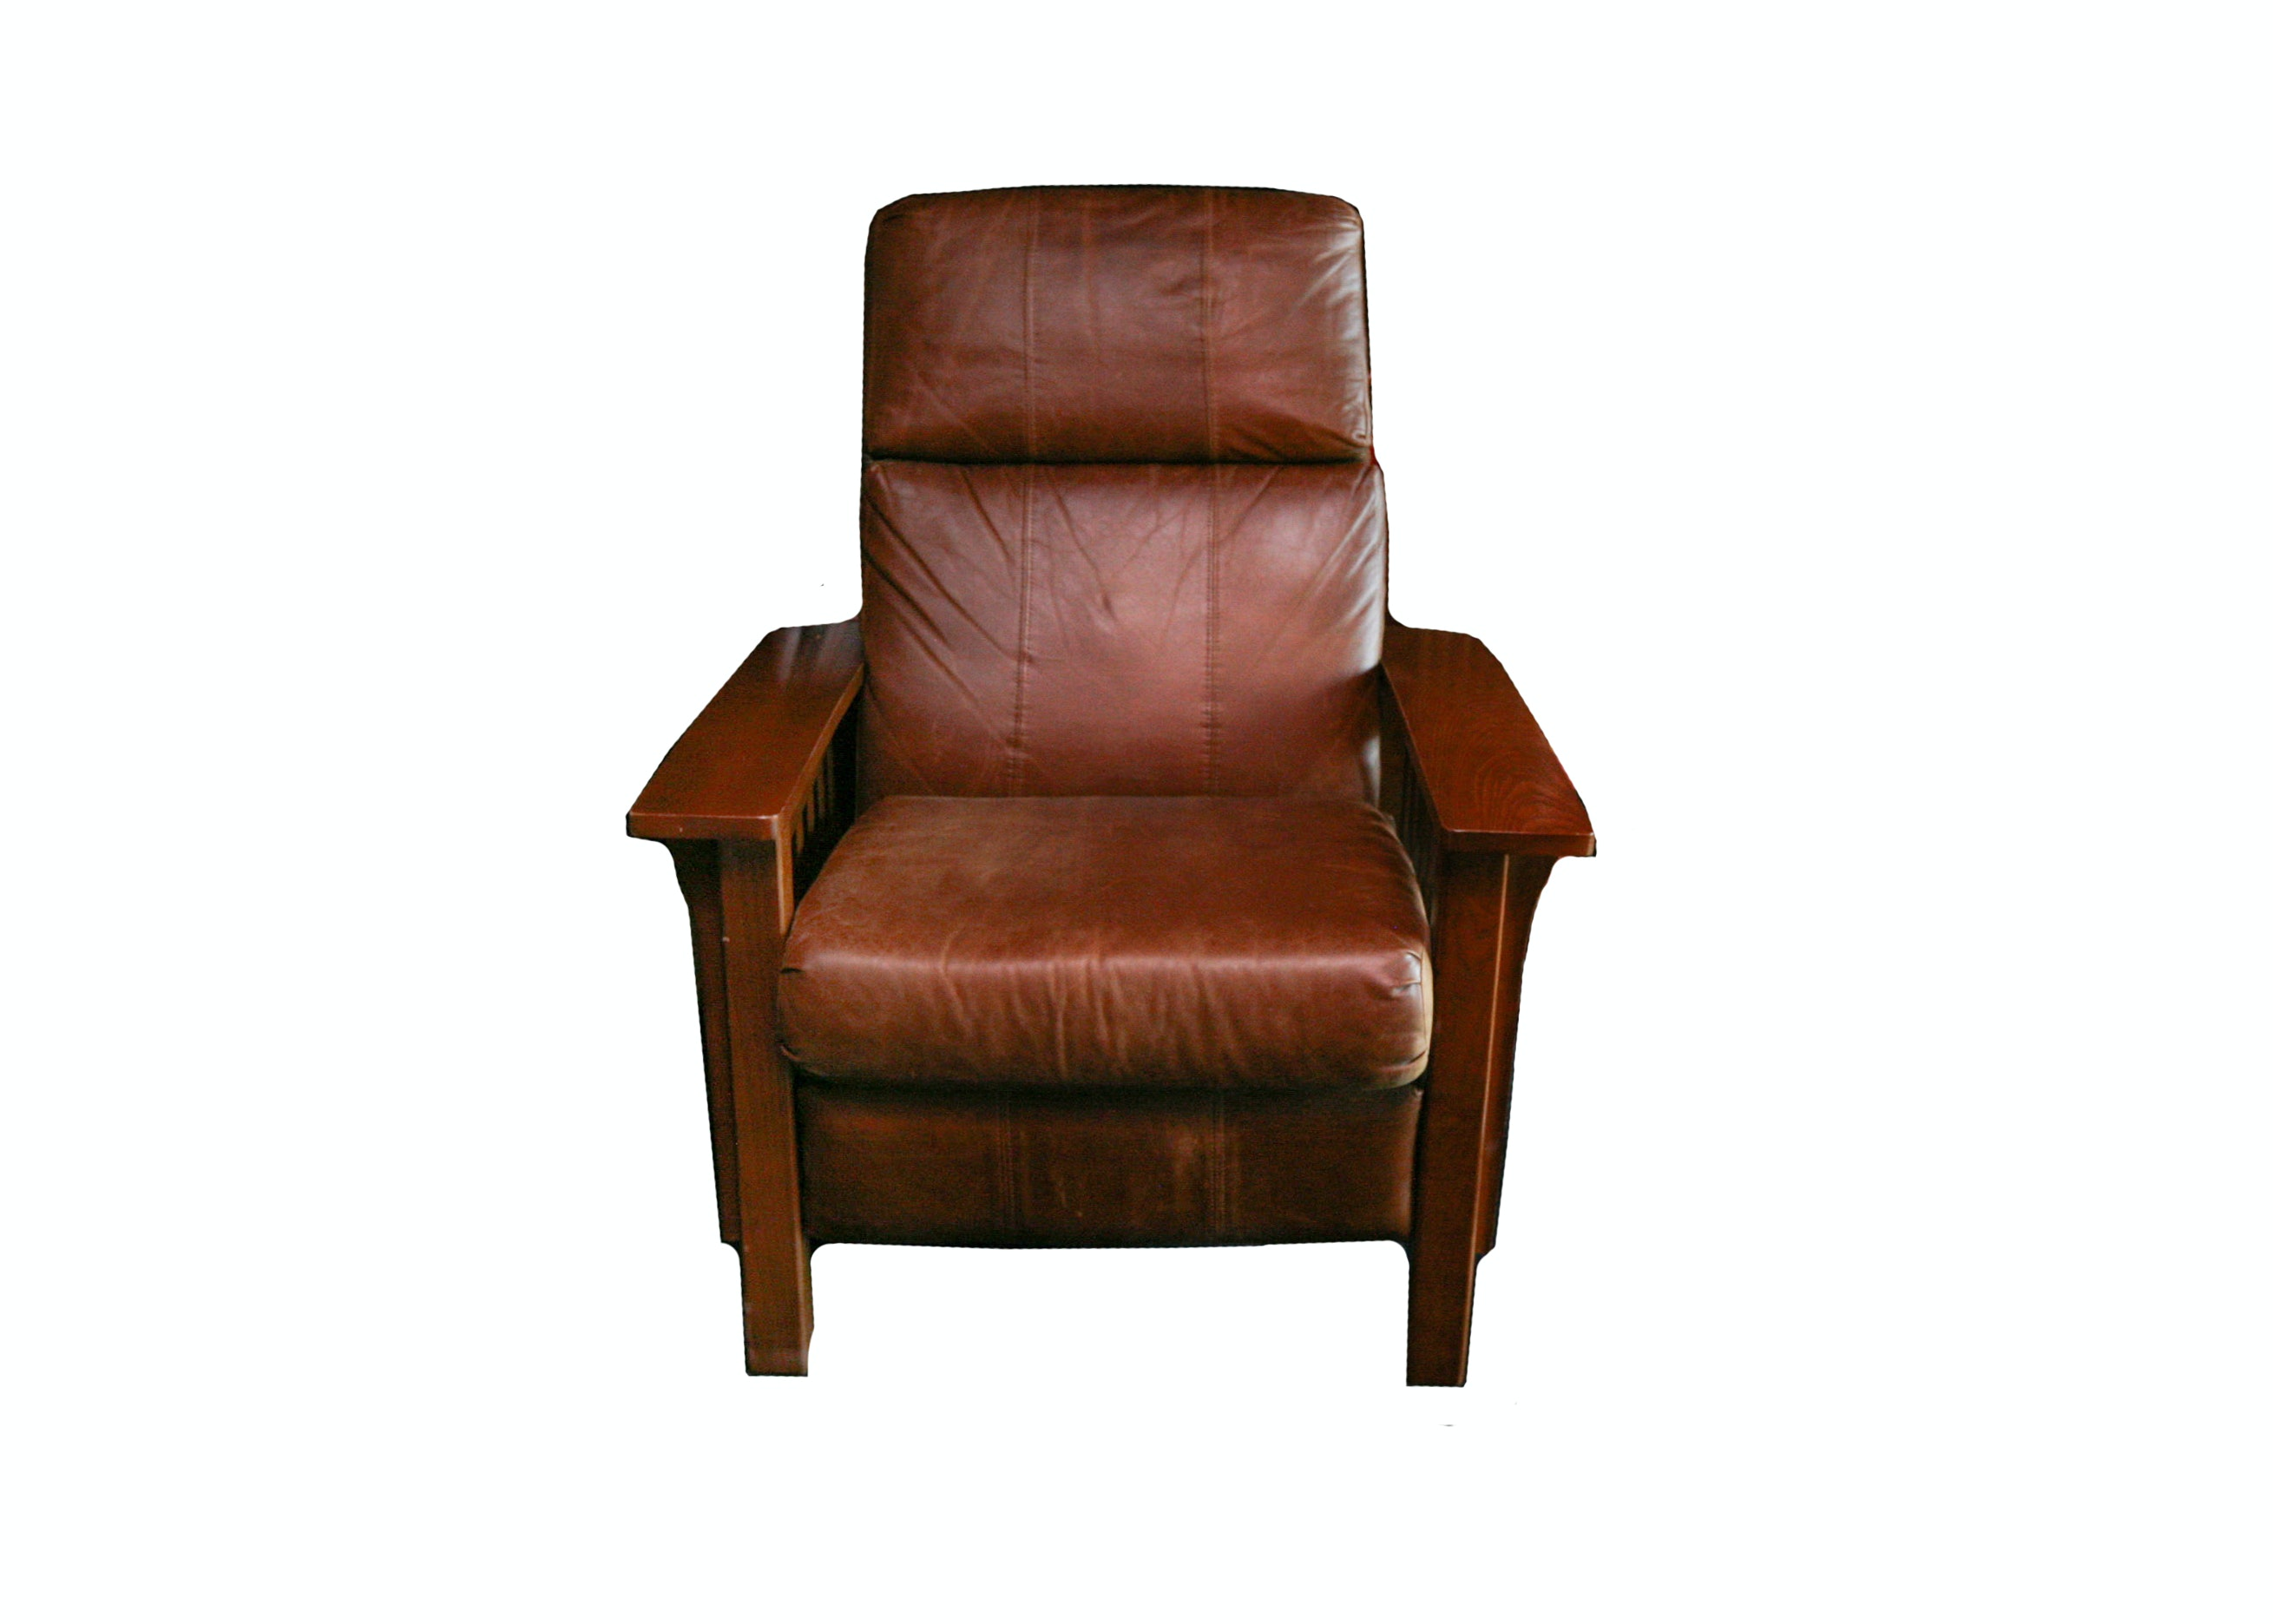 Lane Furniture Mission Style Reclining Chair ...  sc 1 st  Everything But The House & Lane Furniture Mission Style Reclining Chair : EBTH islam-shia.org